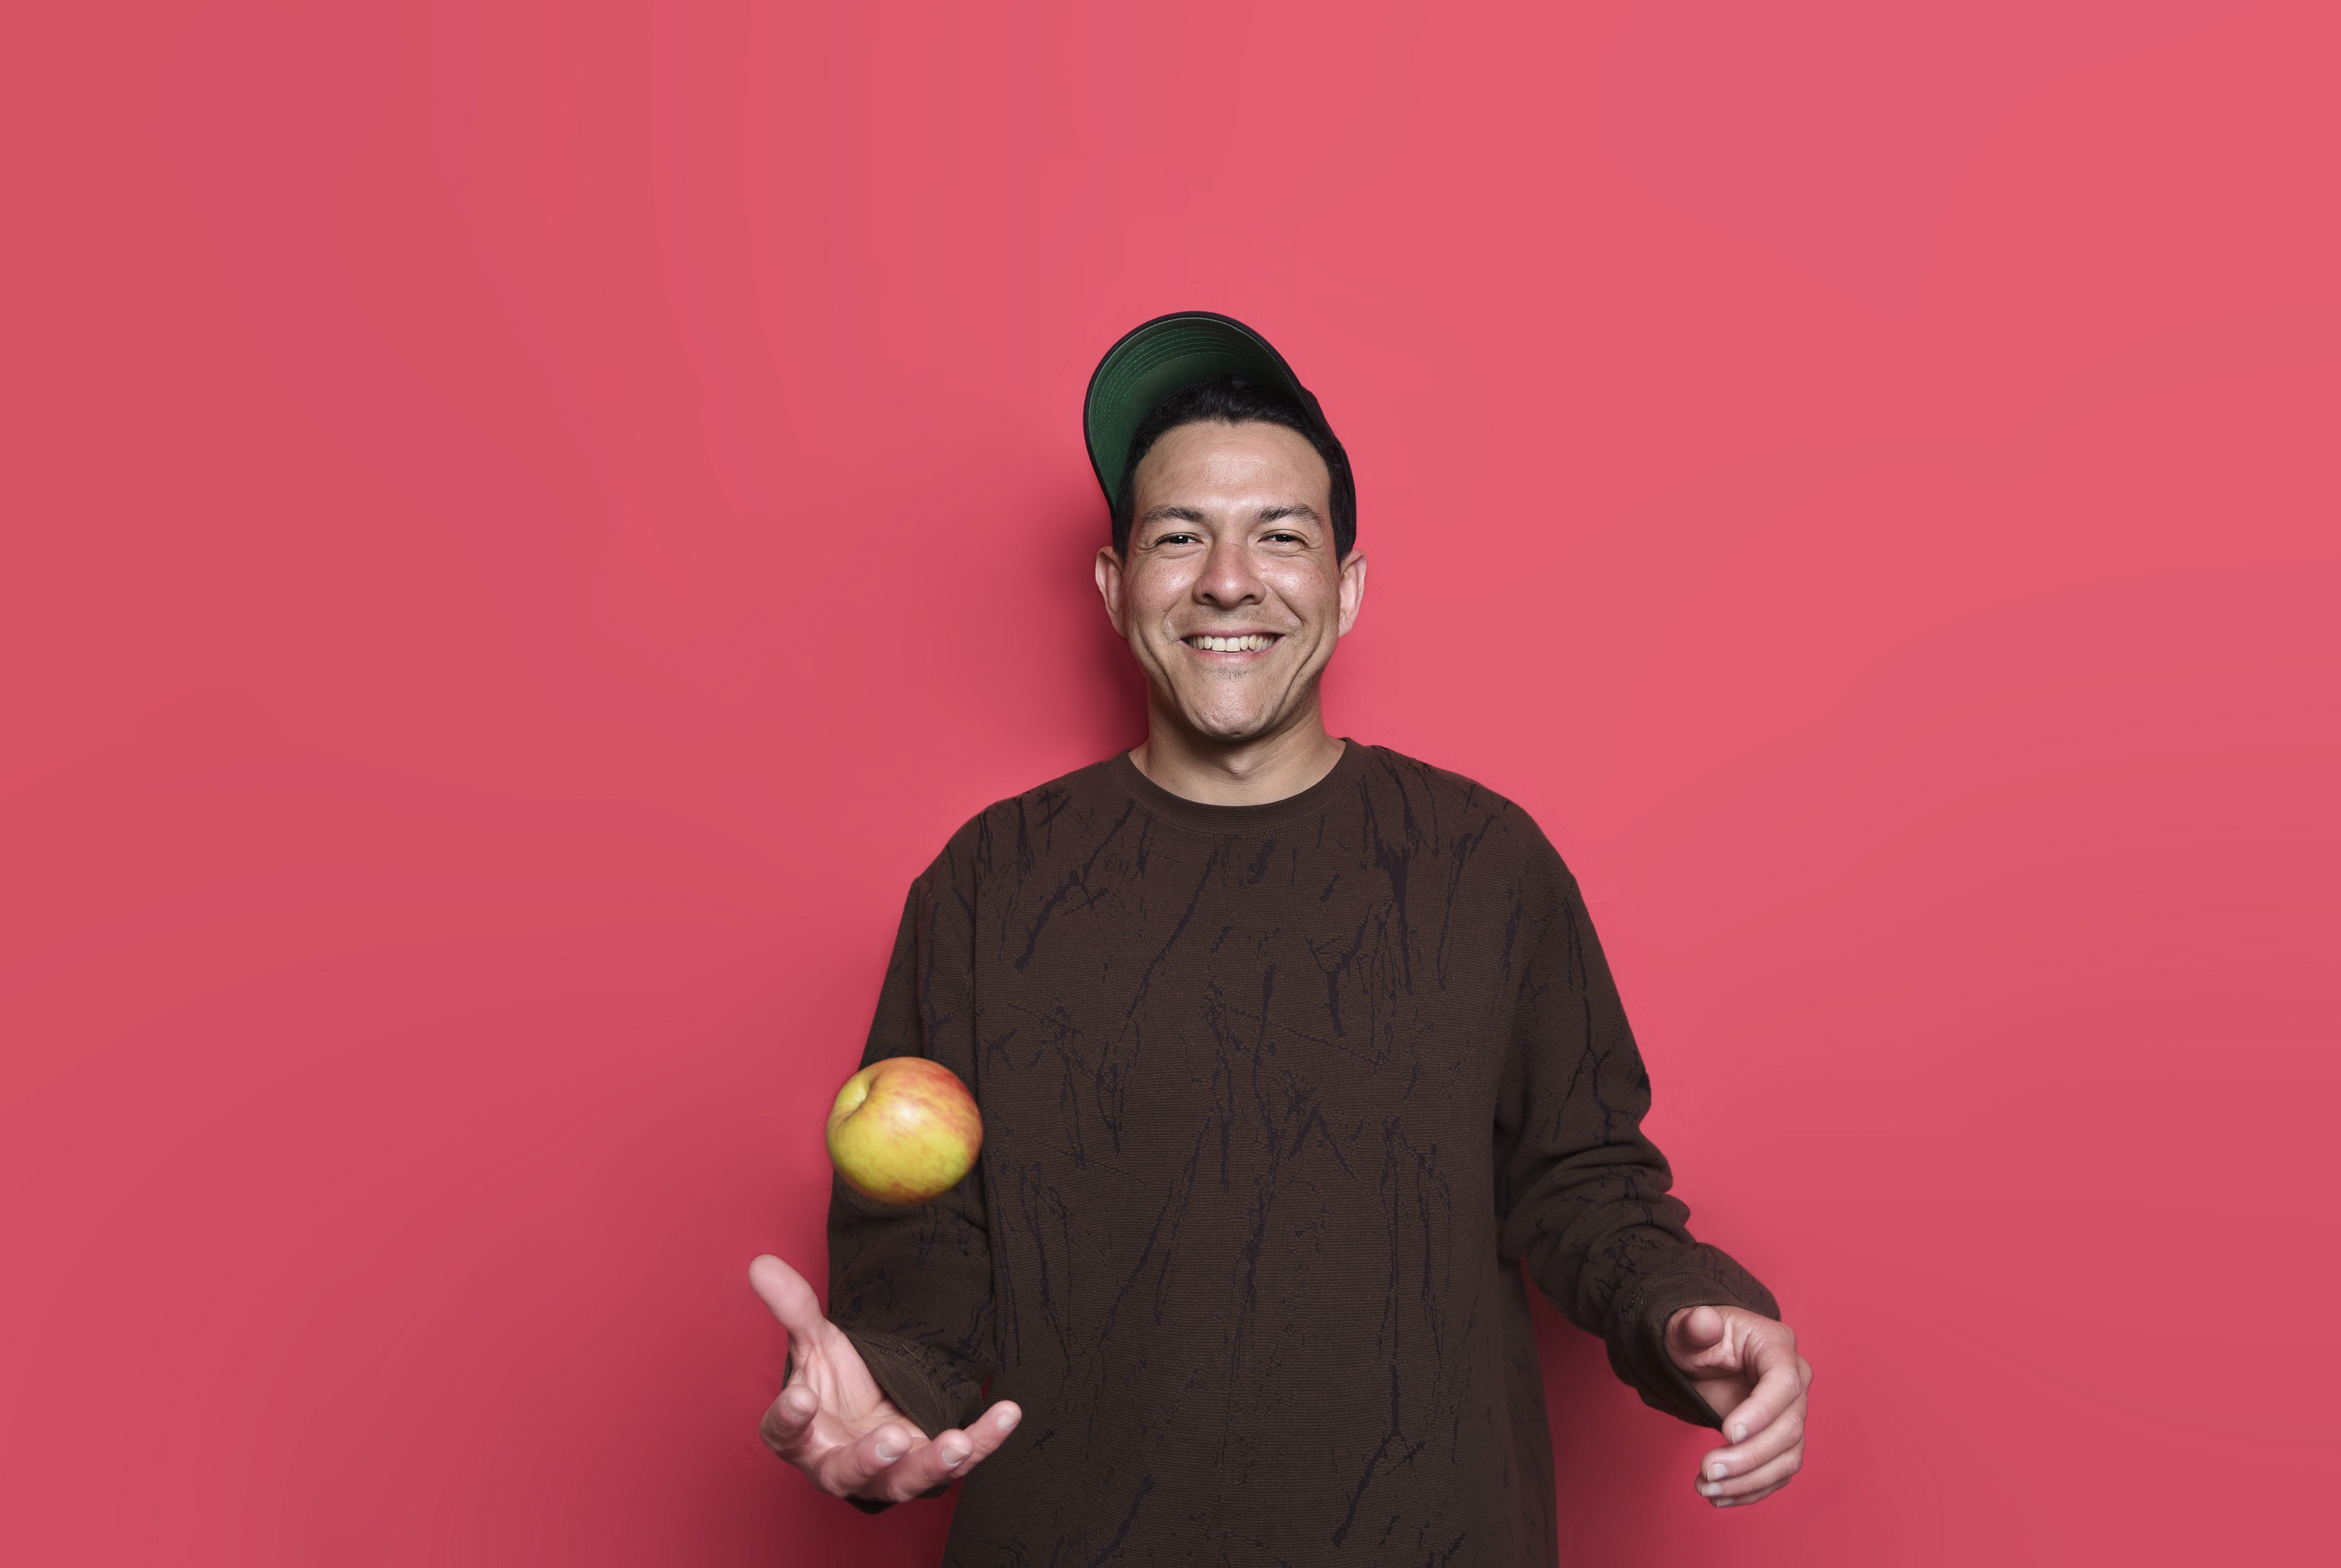 A man juggling one apple, learning one thing at a time